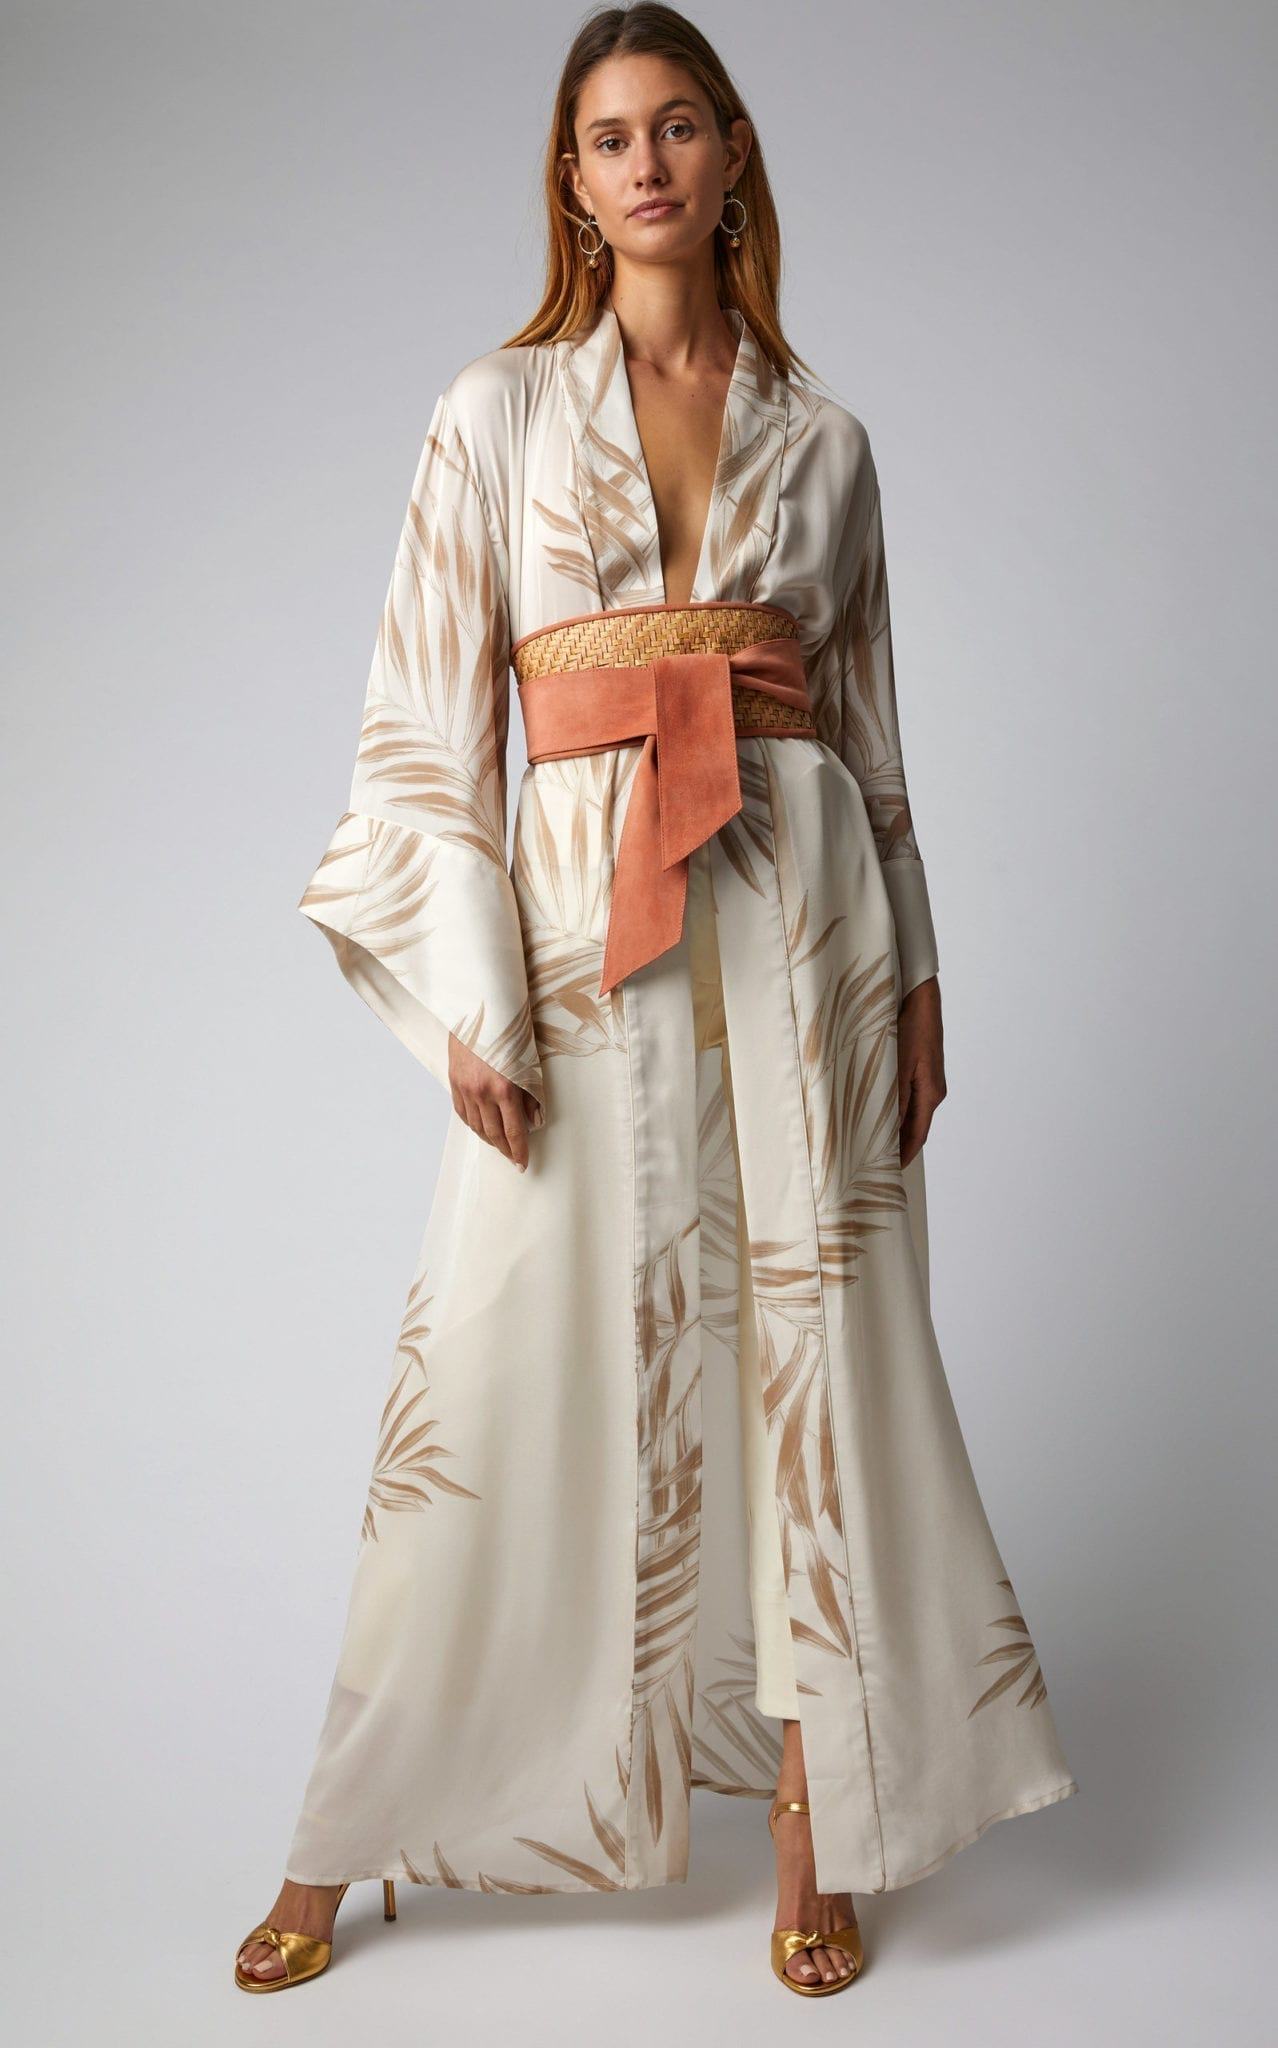 JOHANNA ORTIZ Buena Vista Silk Kimono Neutral / Printed Dress